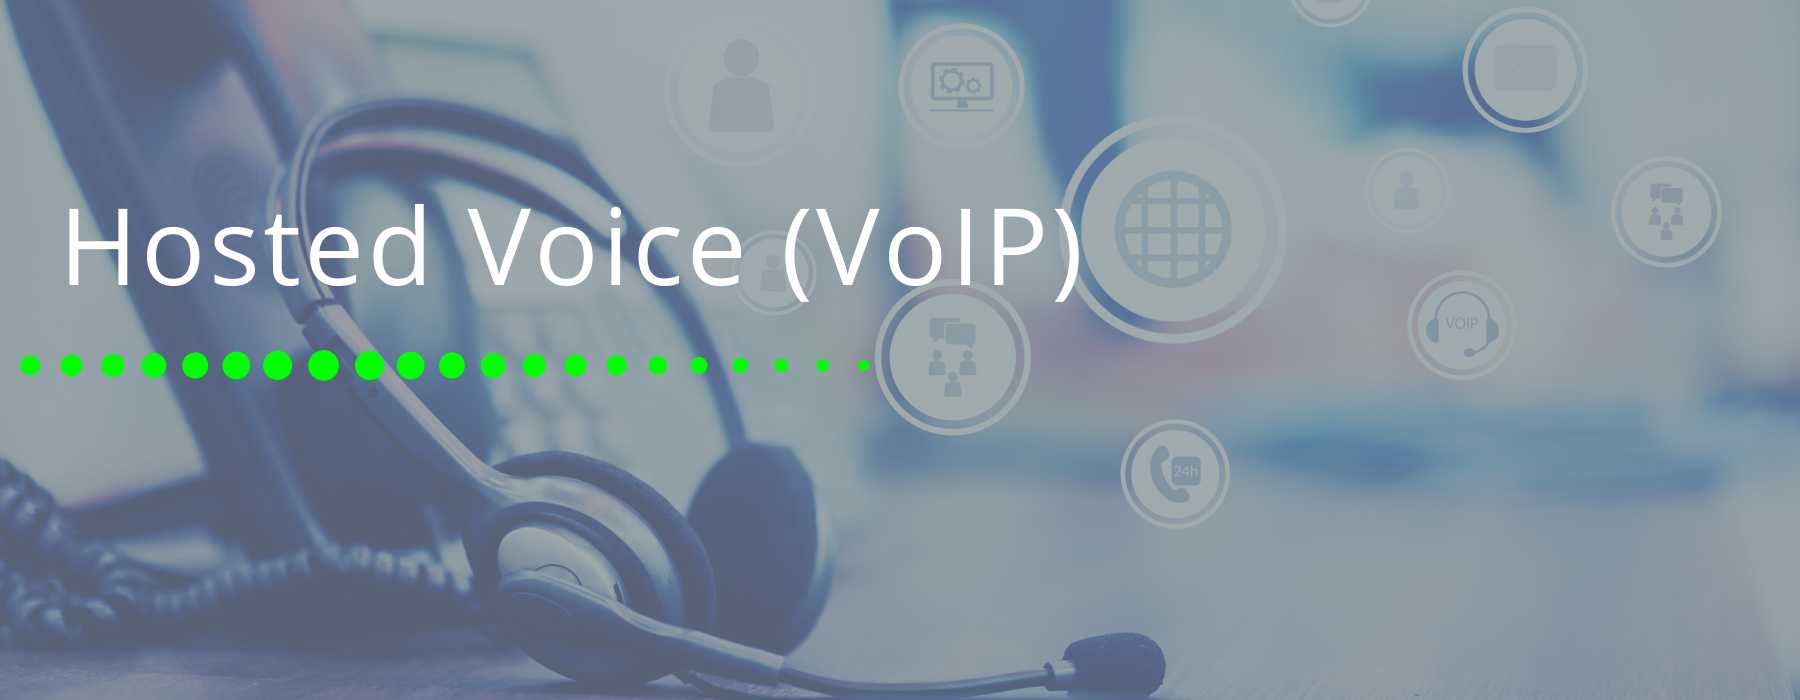 Hosted Voice VoIP